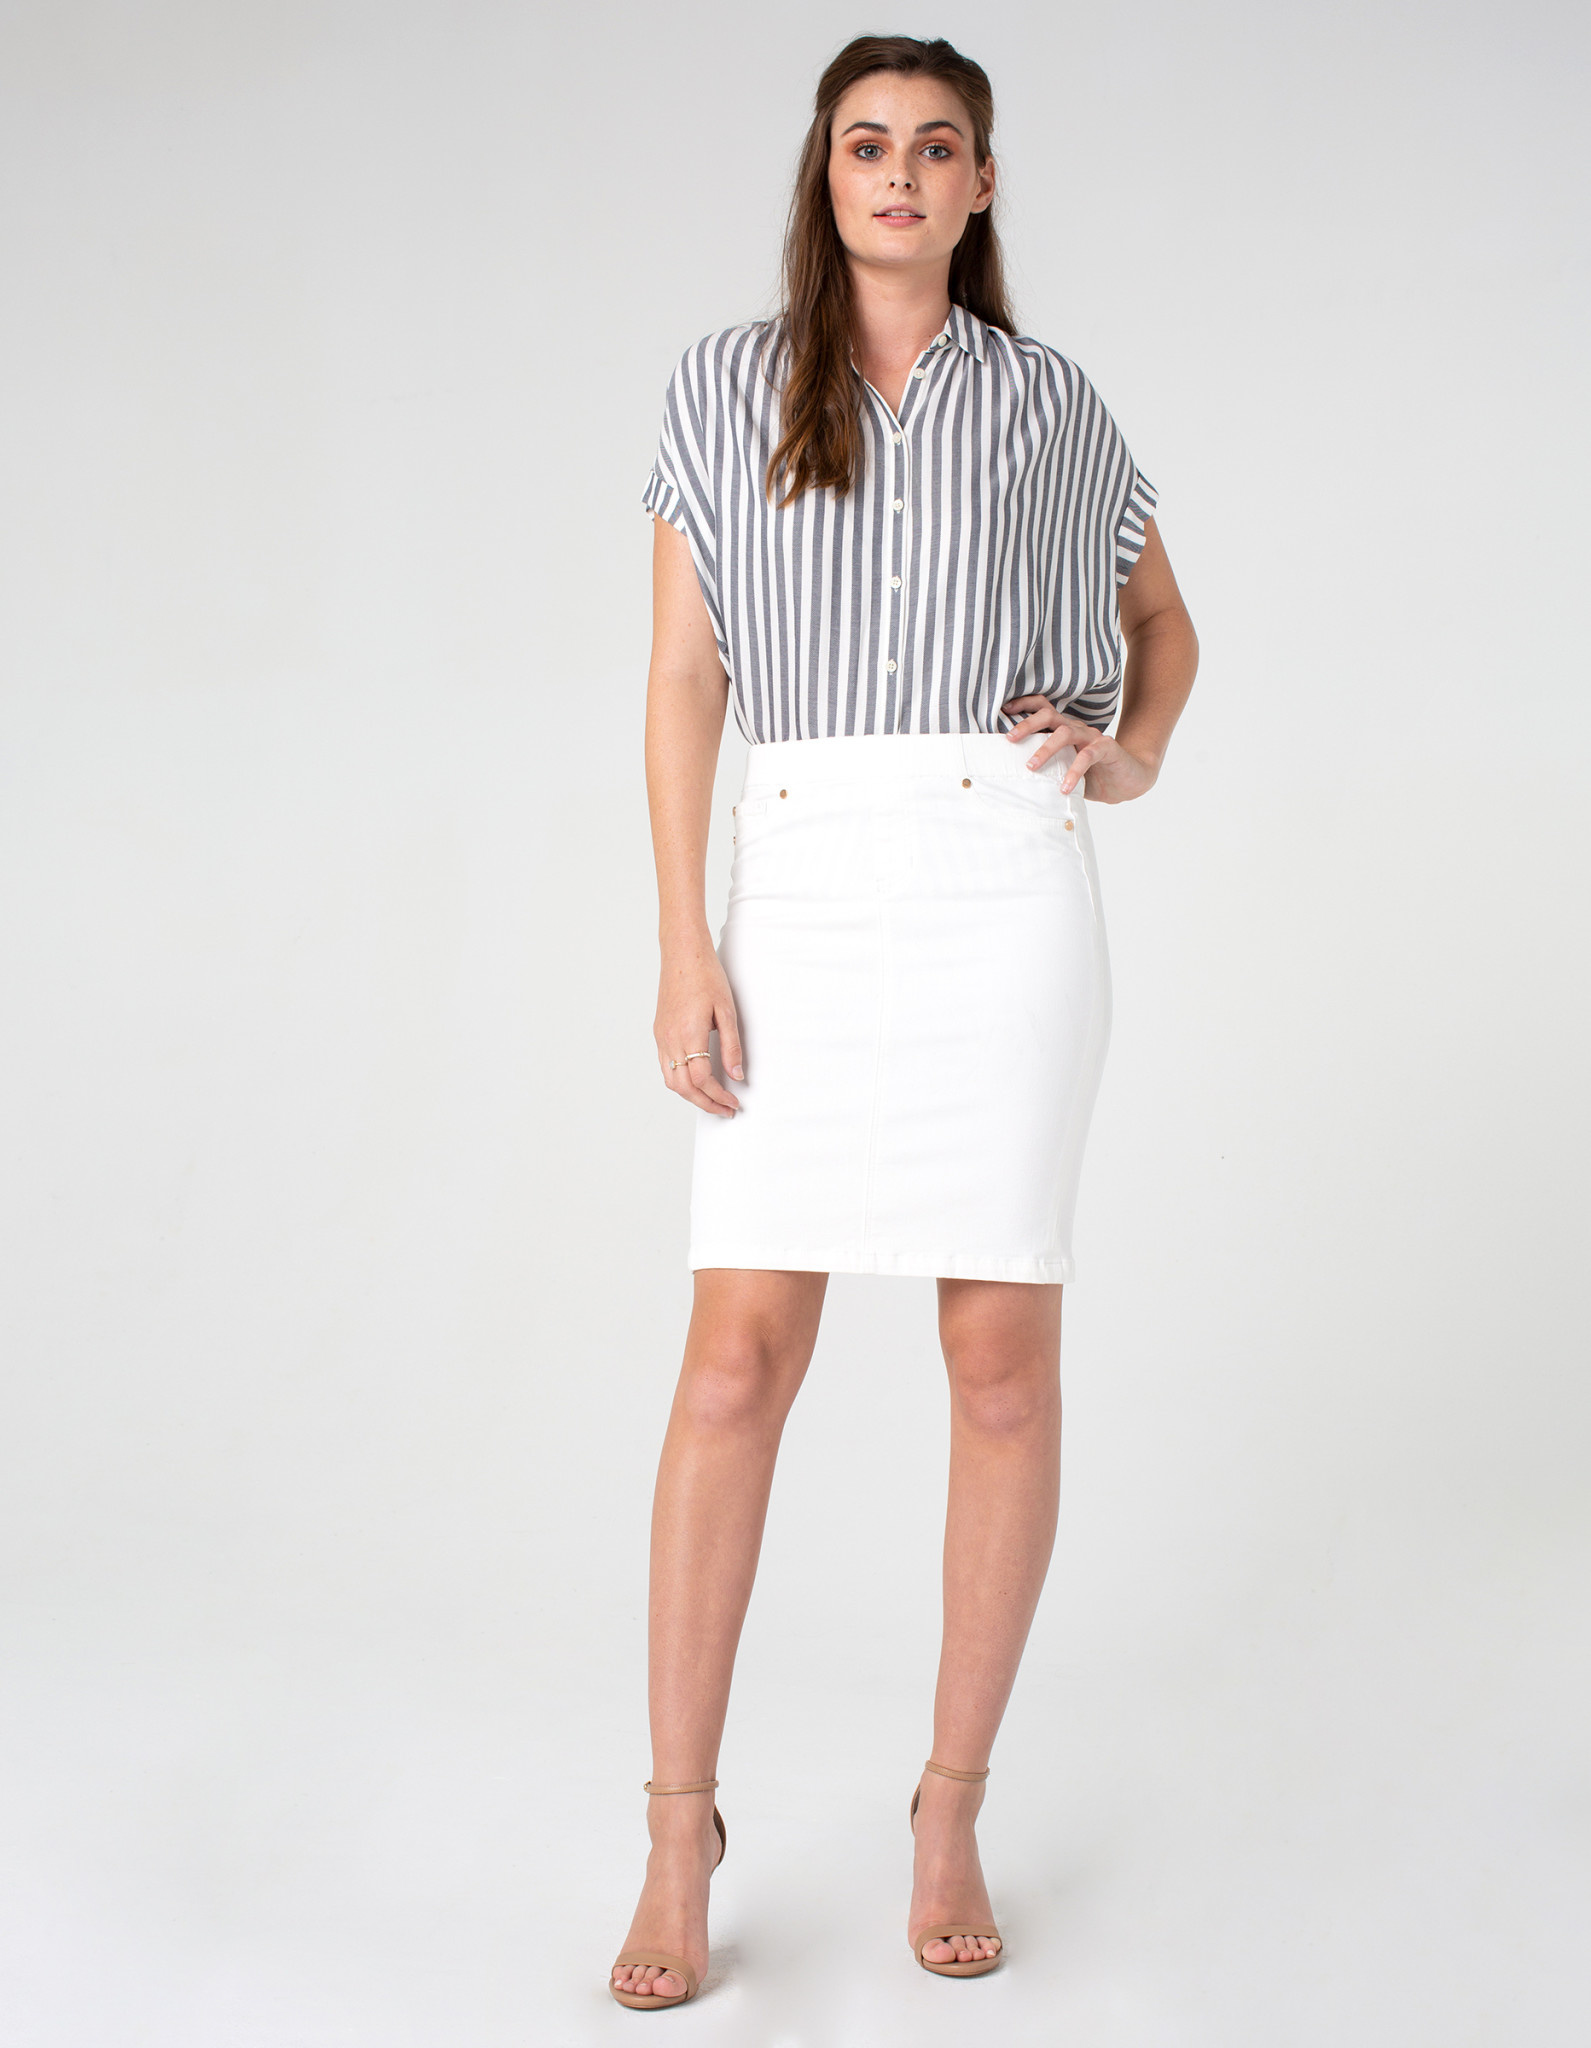 Liverpool Liverpool Chloe Pencil Skirt